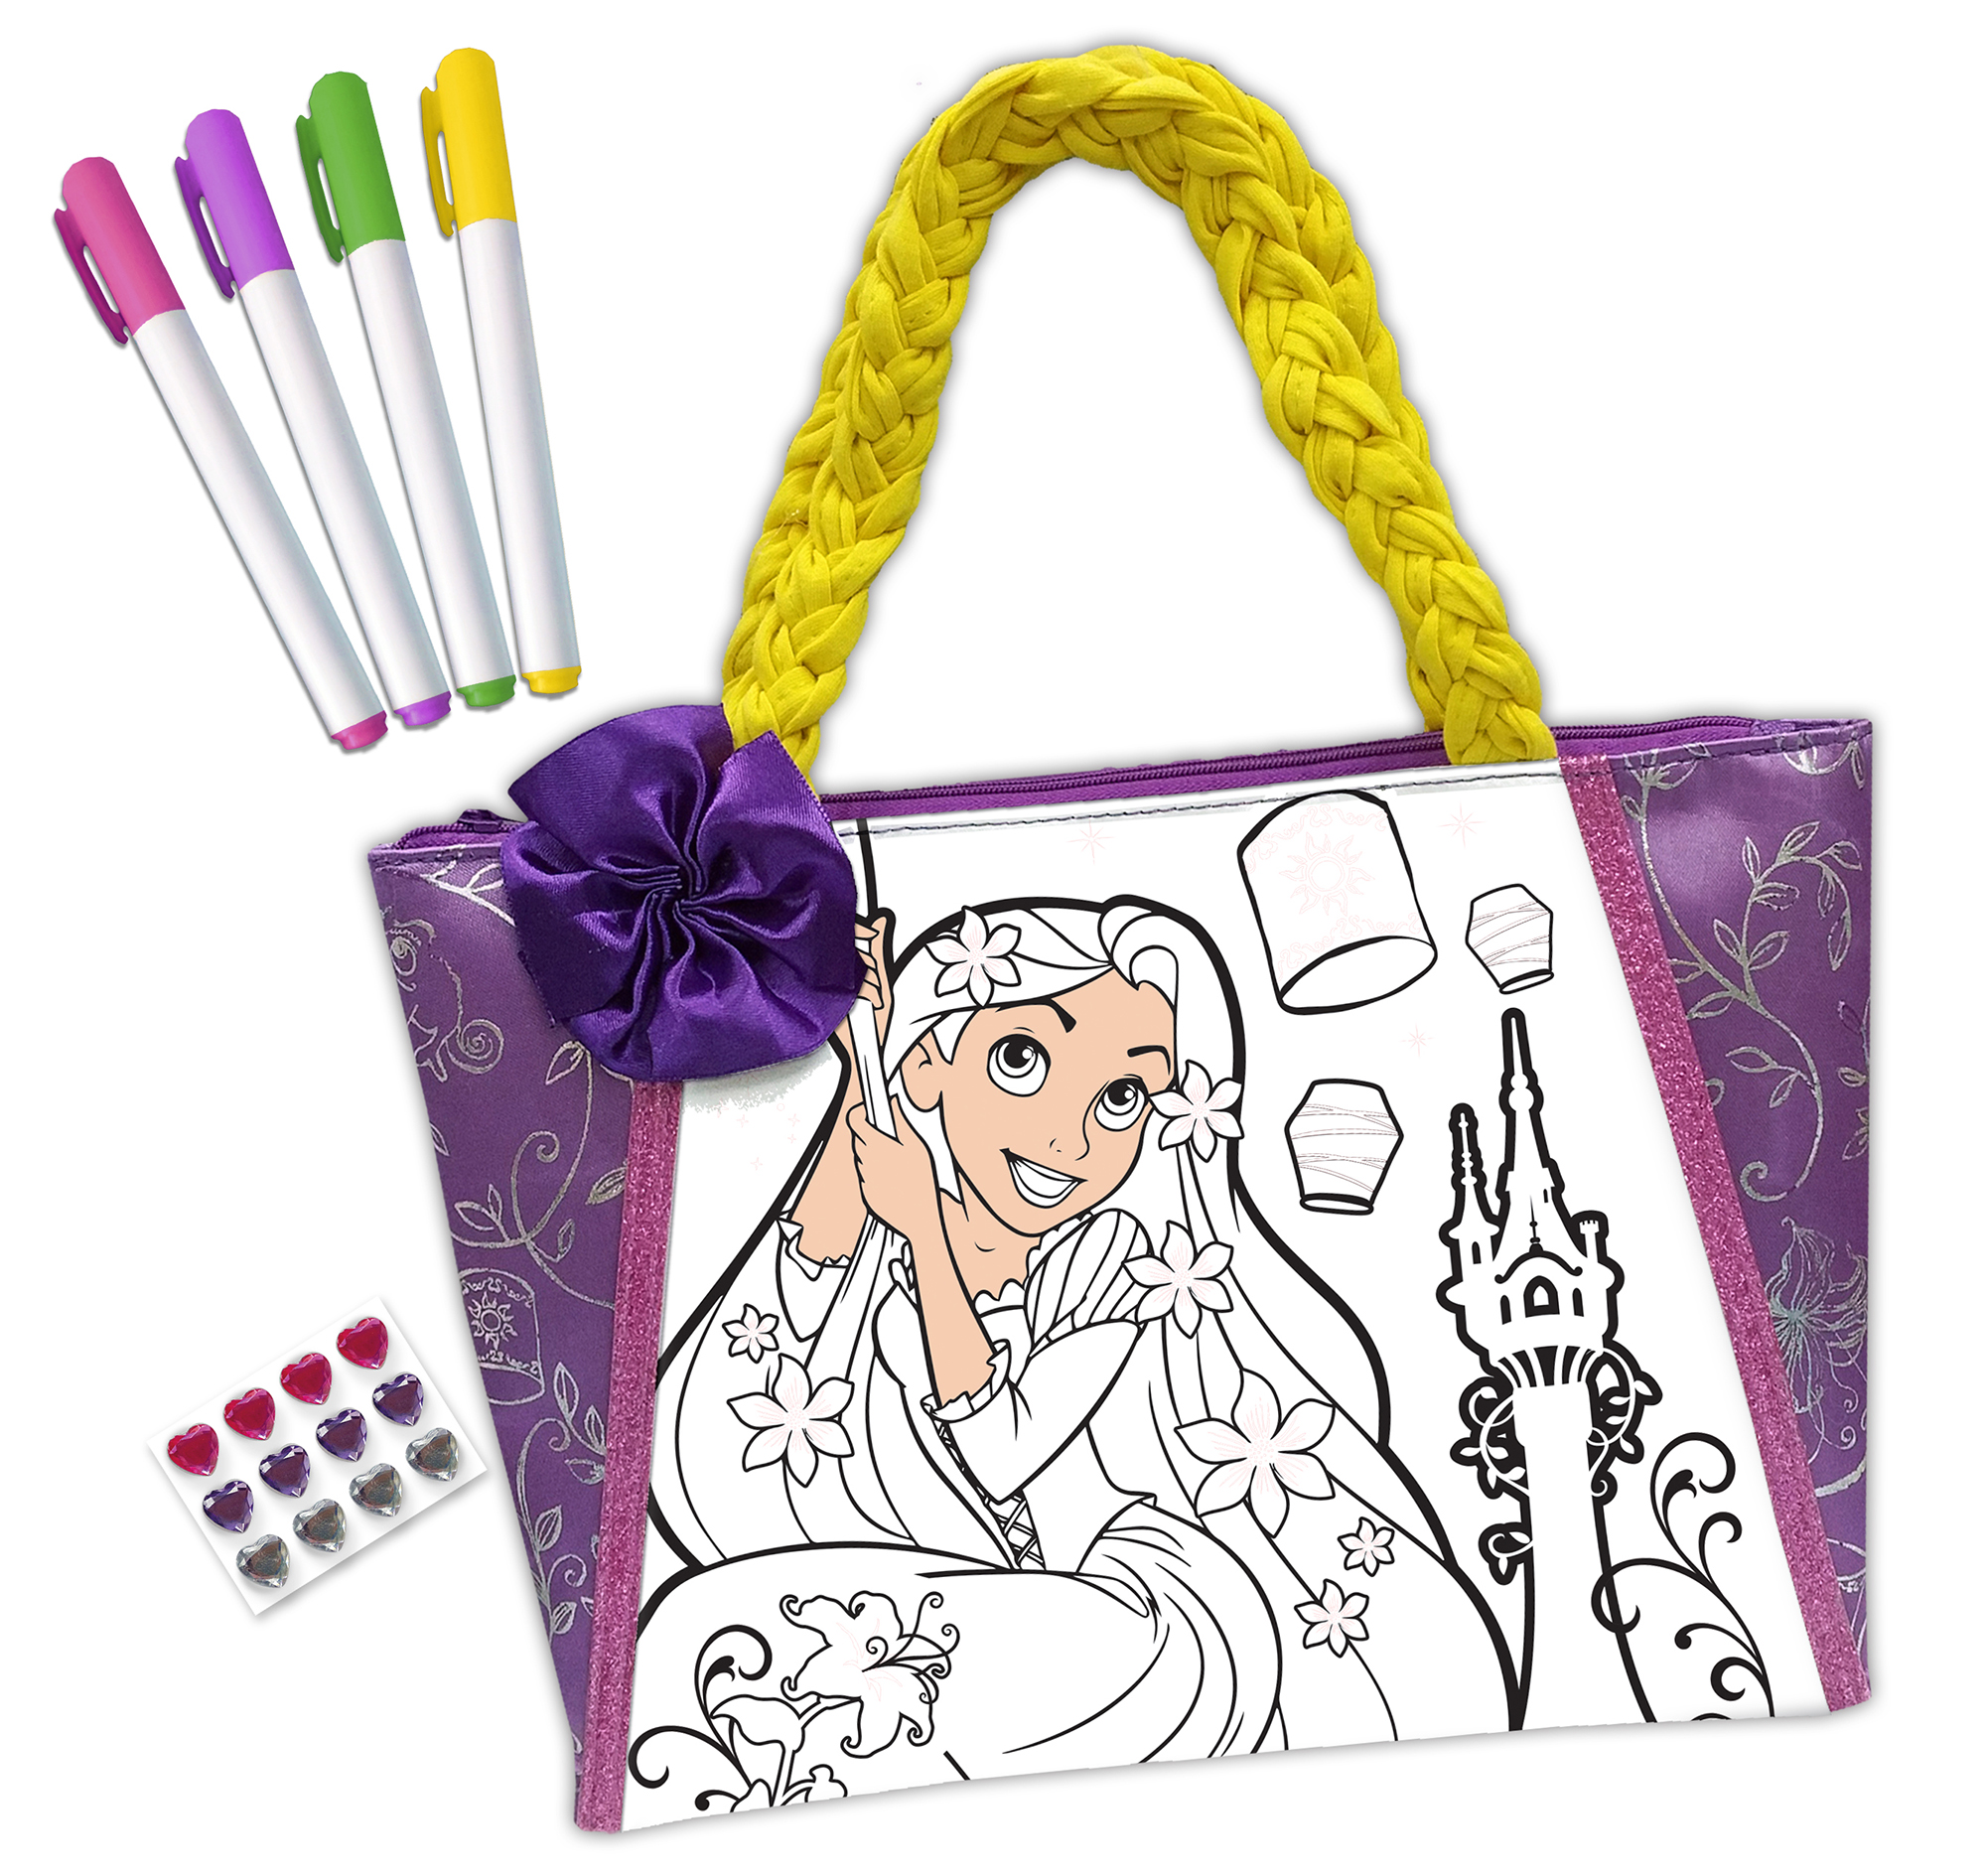 Disney Princess Rapunzel Color N Style Purse by Tara Toy